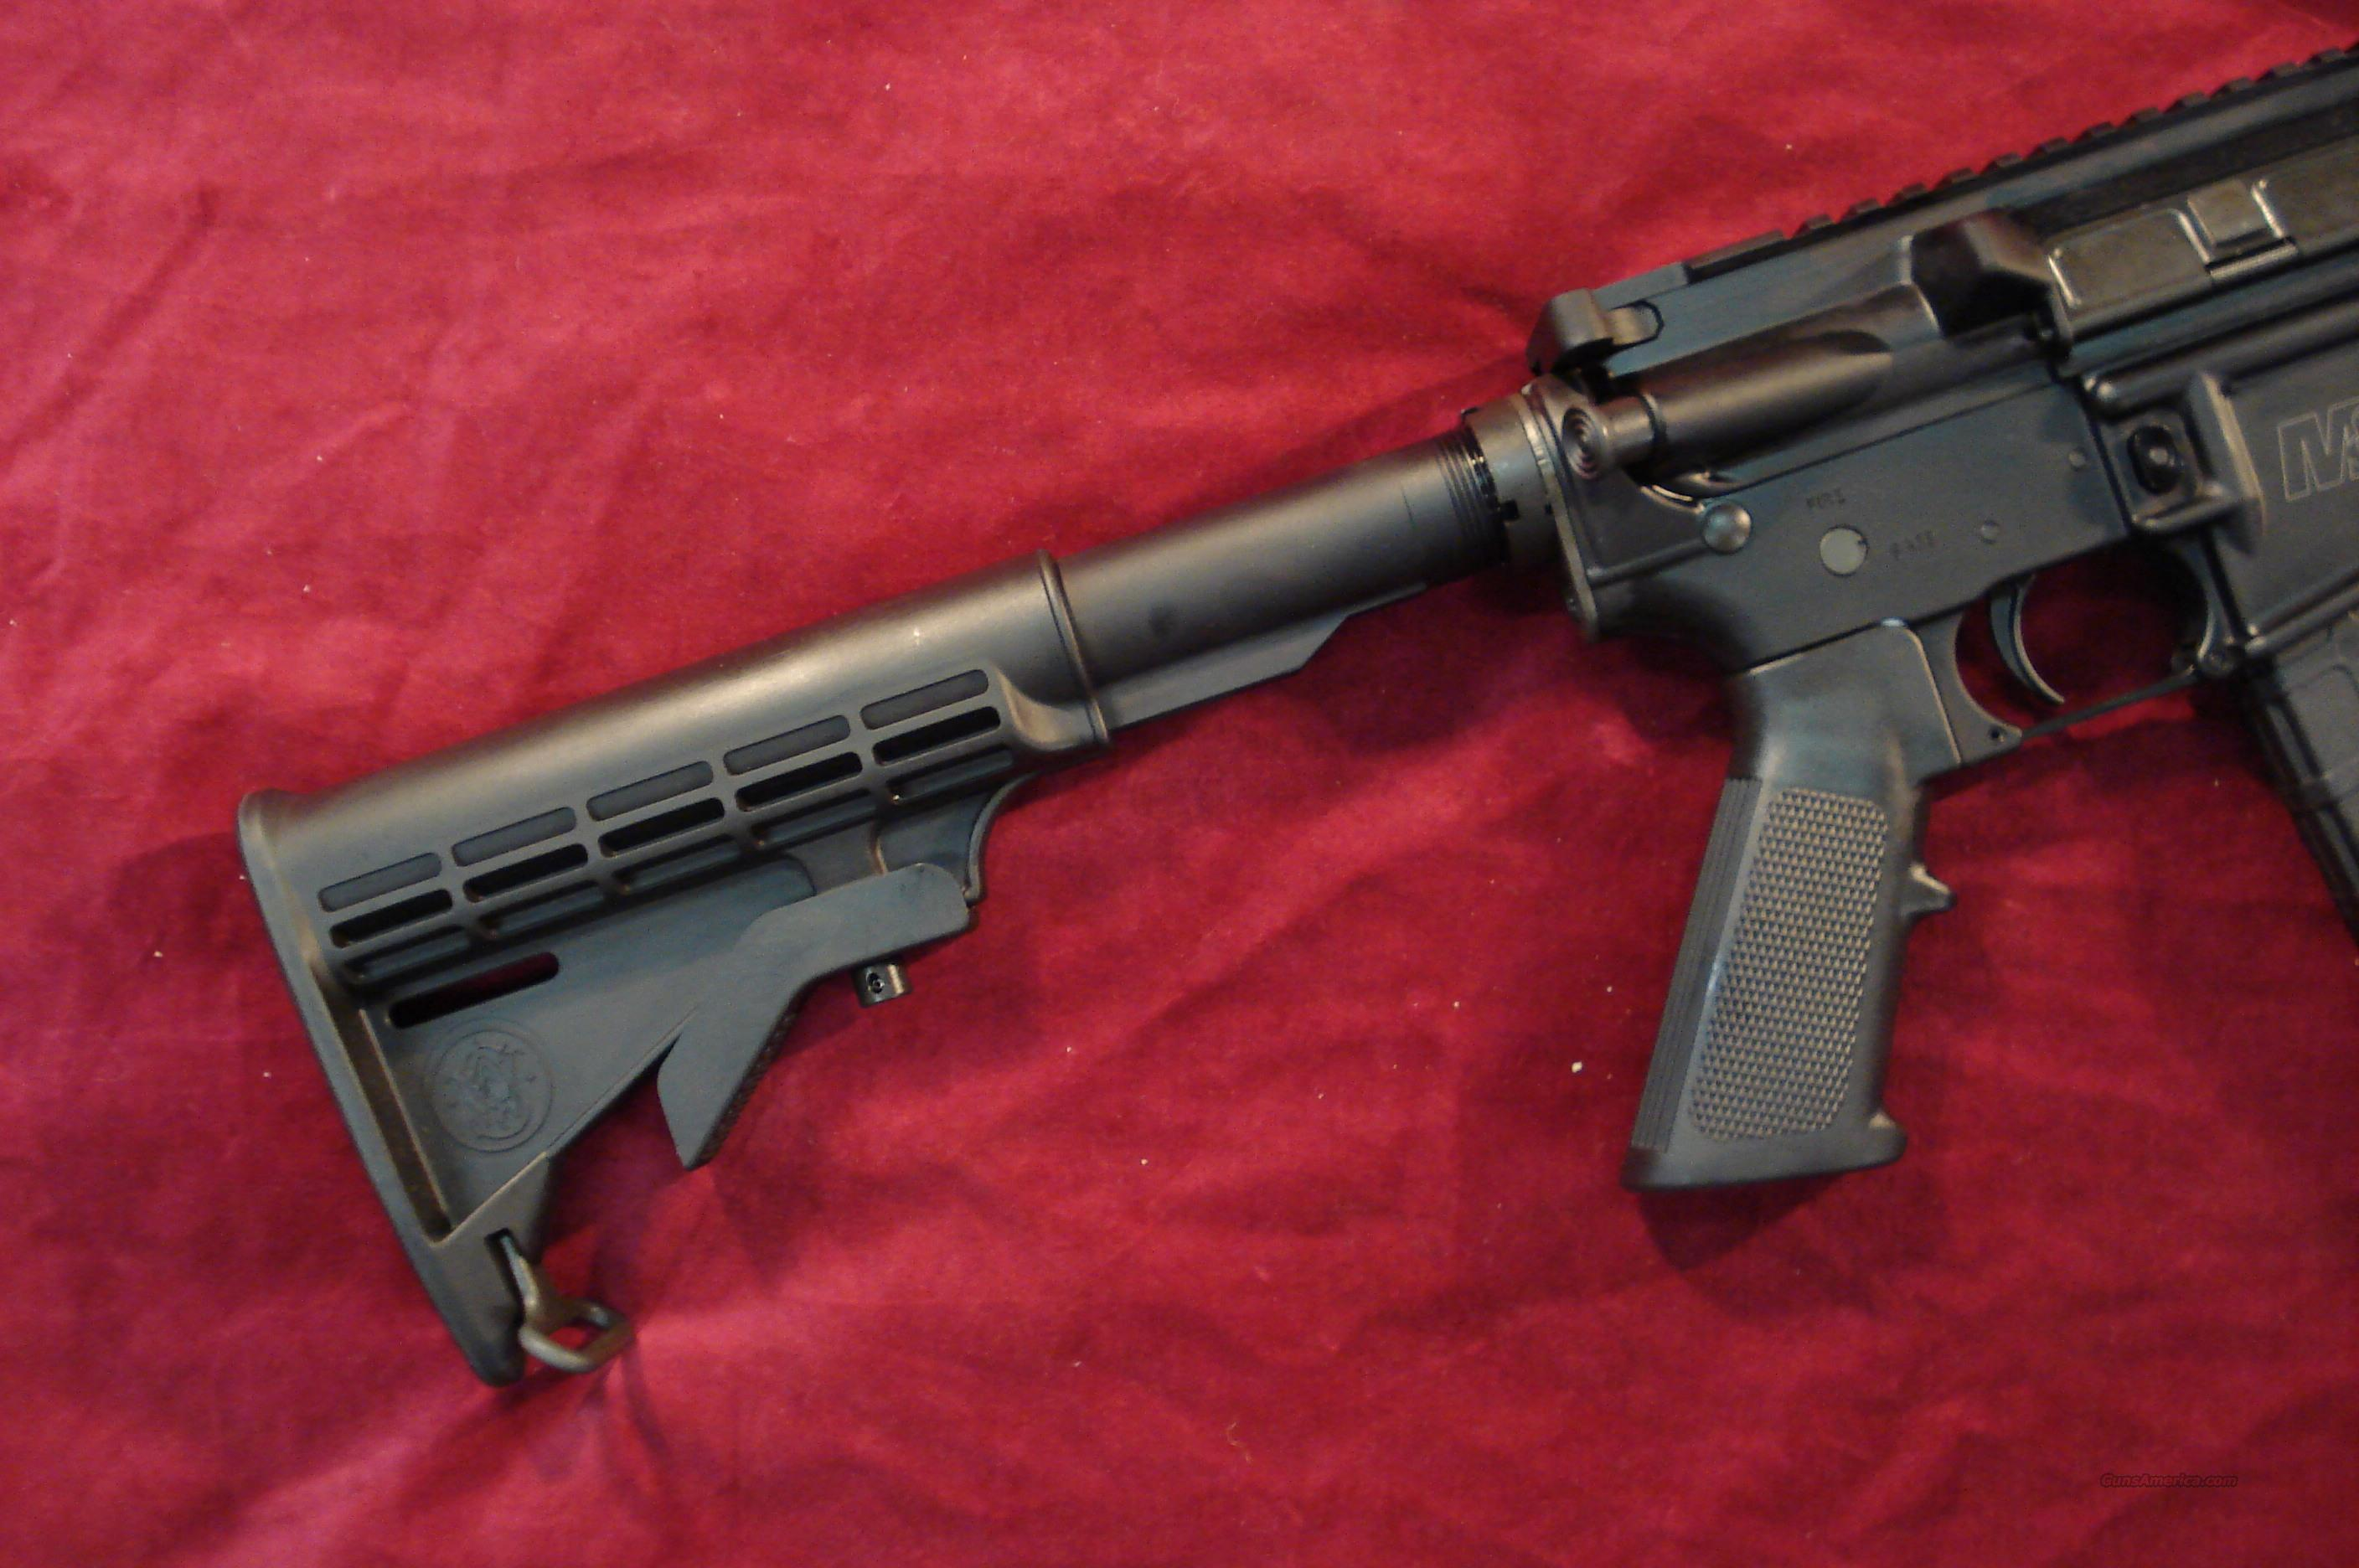 SMITH & WESSON M&P15OR ( OPTIC READY CARBINE) 223/5.56 CAL.NEW  Guns > Rifles > Smith & Wesson Rifles > M&P